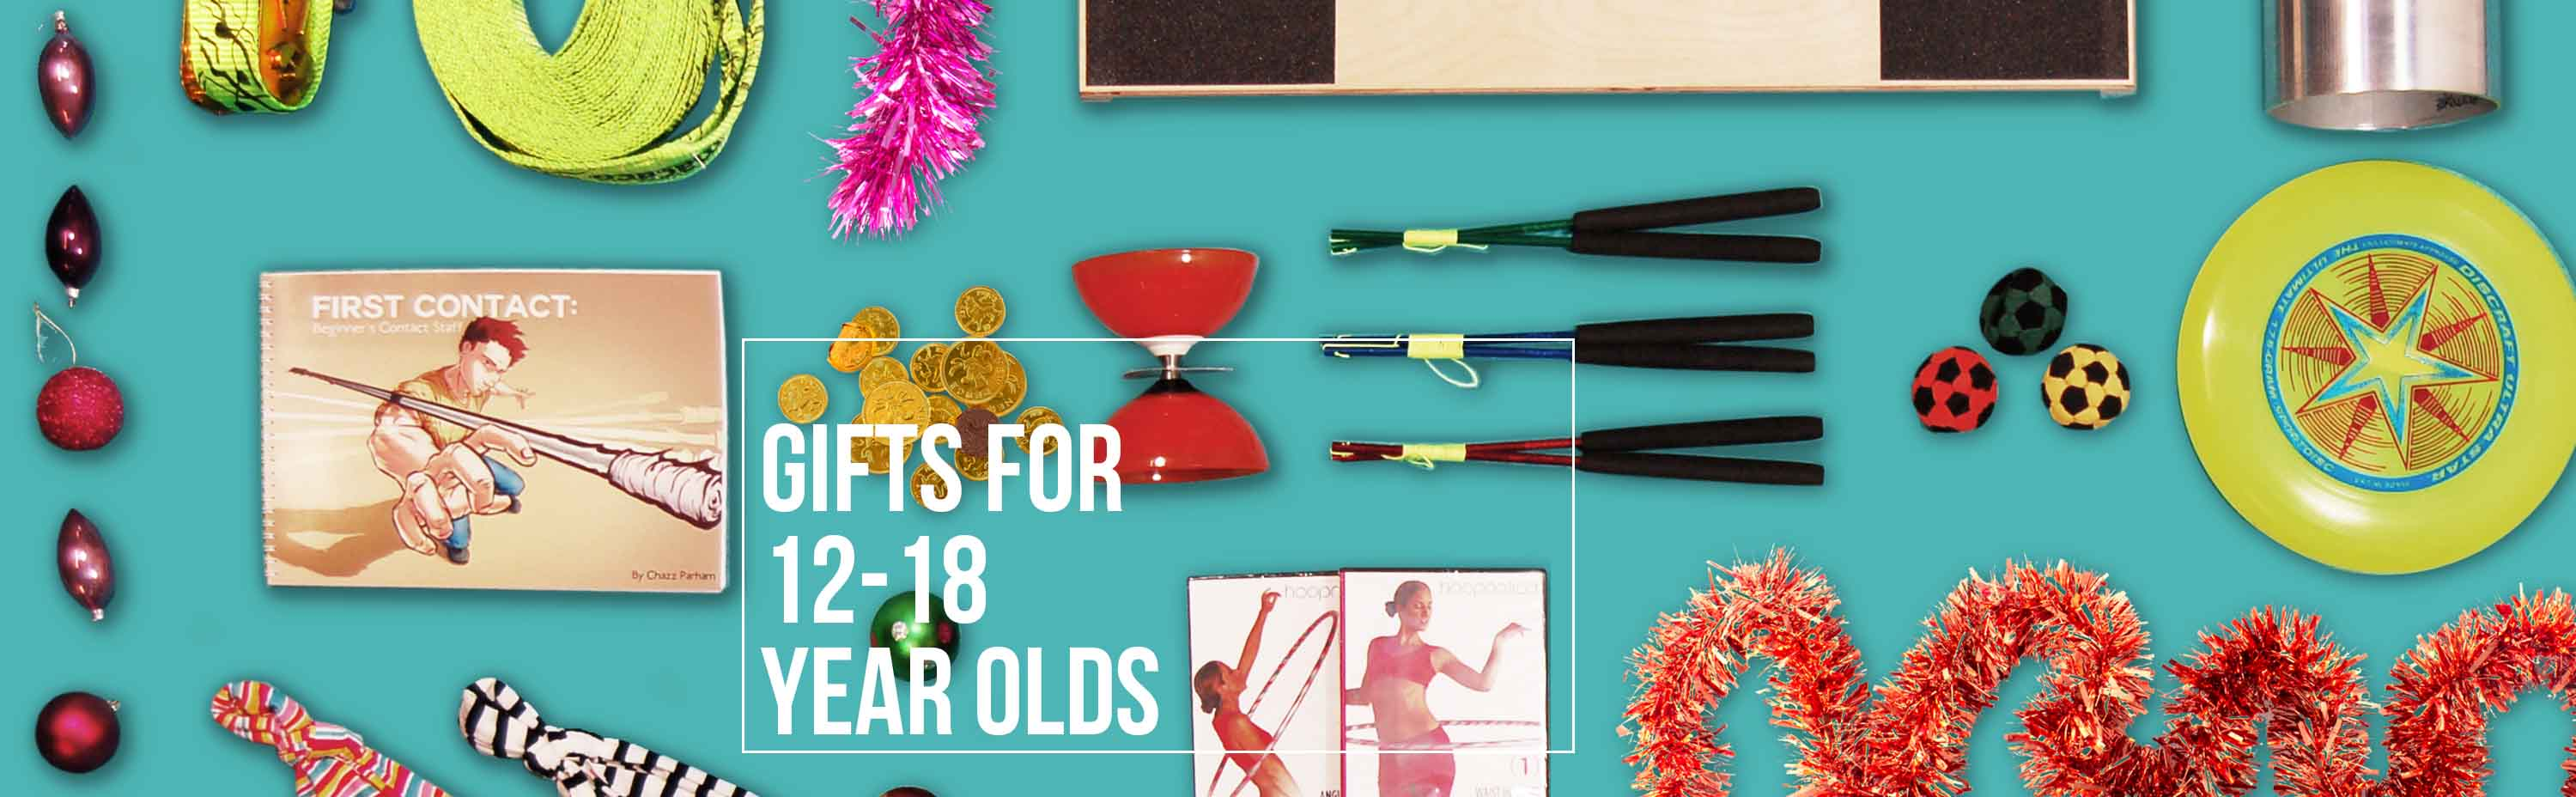 Presents for 12-18 Year Olds